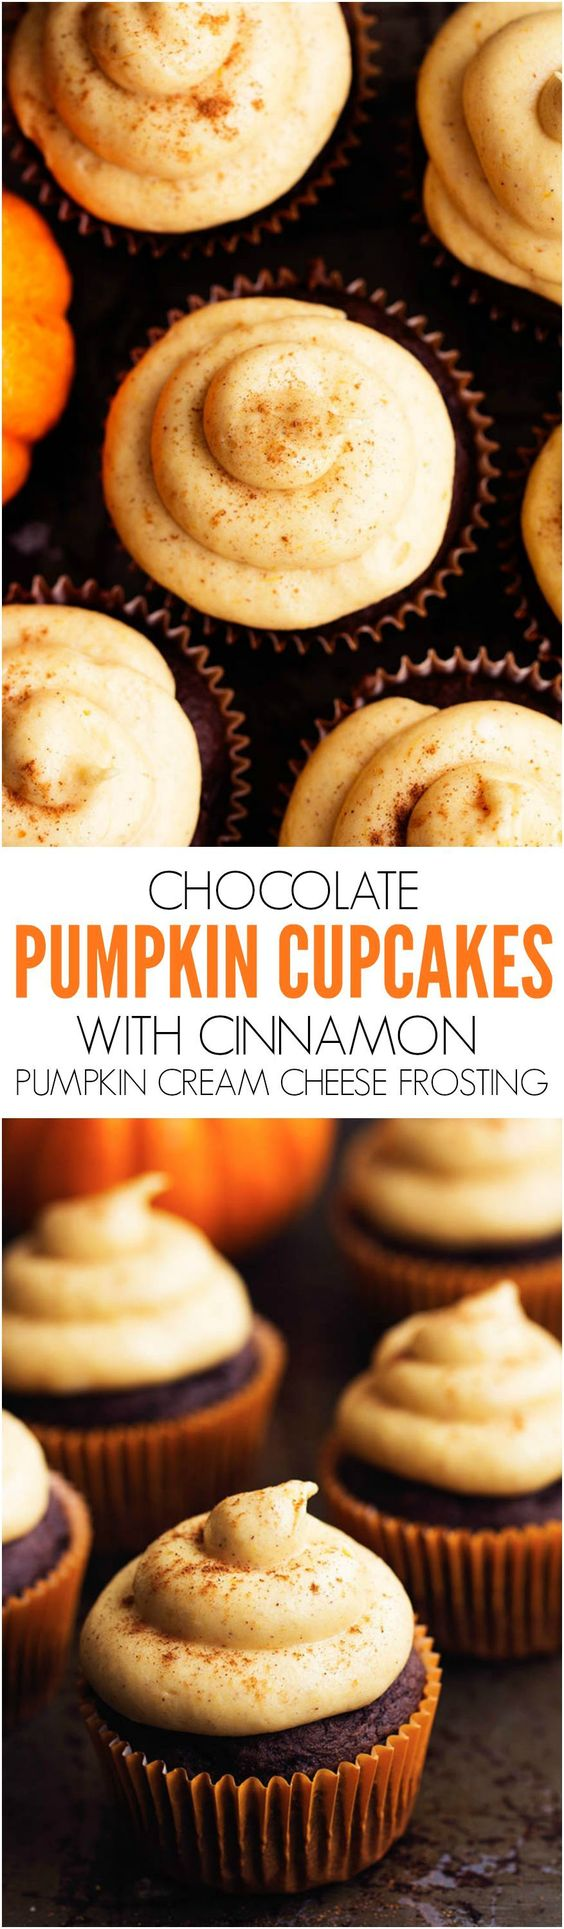 Moist chocolate pumpkin cupcakes with an amazing cinnamon pumpkin cream cheese frosting! These are the perfect fall treat!